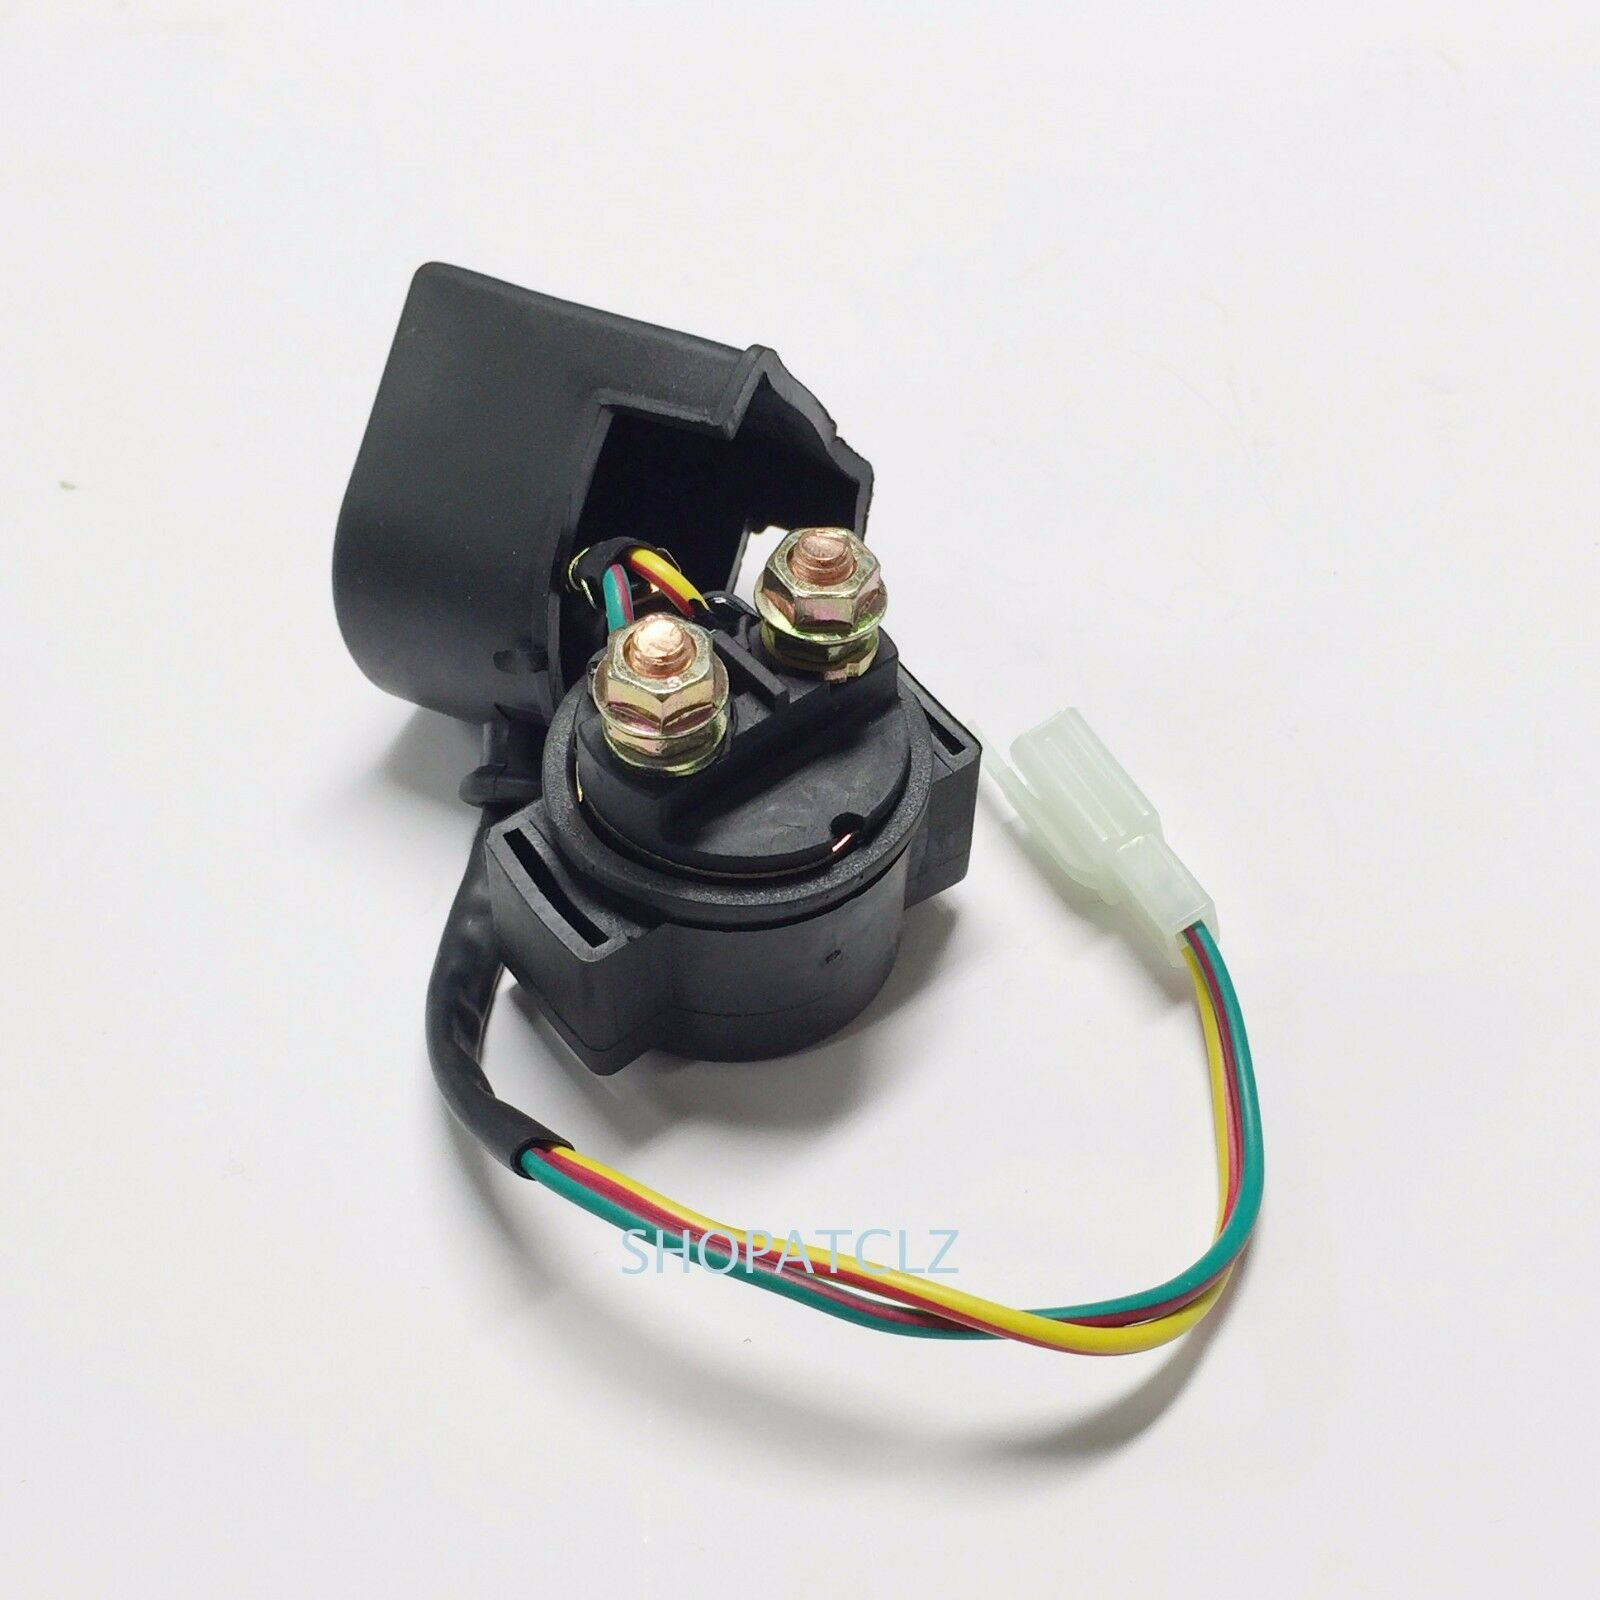 Hammerhead Starter Relay Solenoid Twister 150 150cc Go Kart Parts Wiring Harness 1 Of 1free Shipping